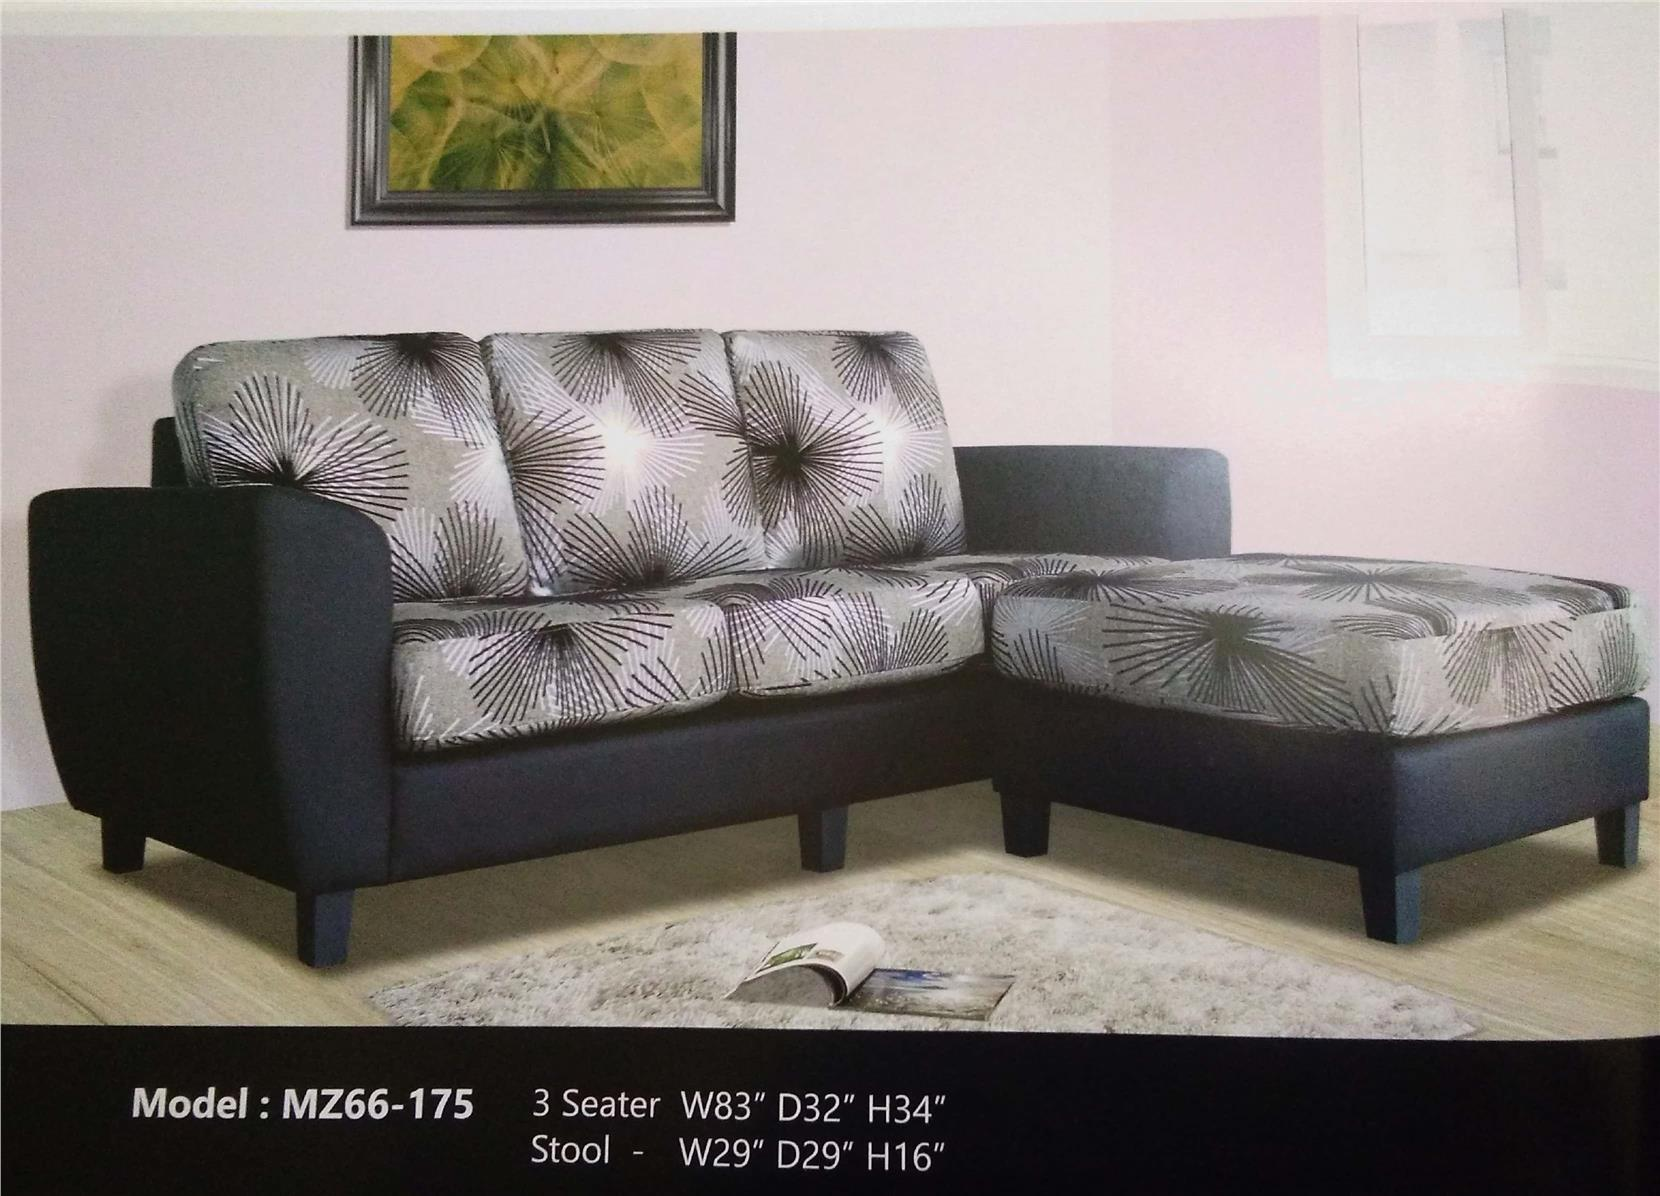 SOFA (3SEATER+STOOL) INSTALLMENT PLAN PAYMENT MODEL MZ66-175